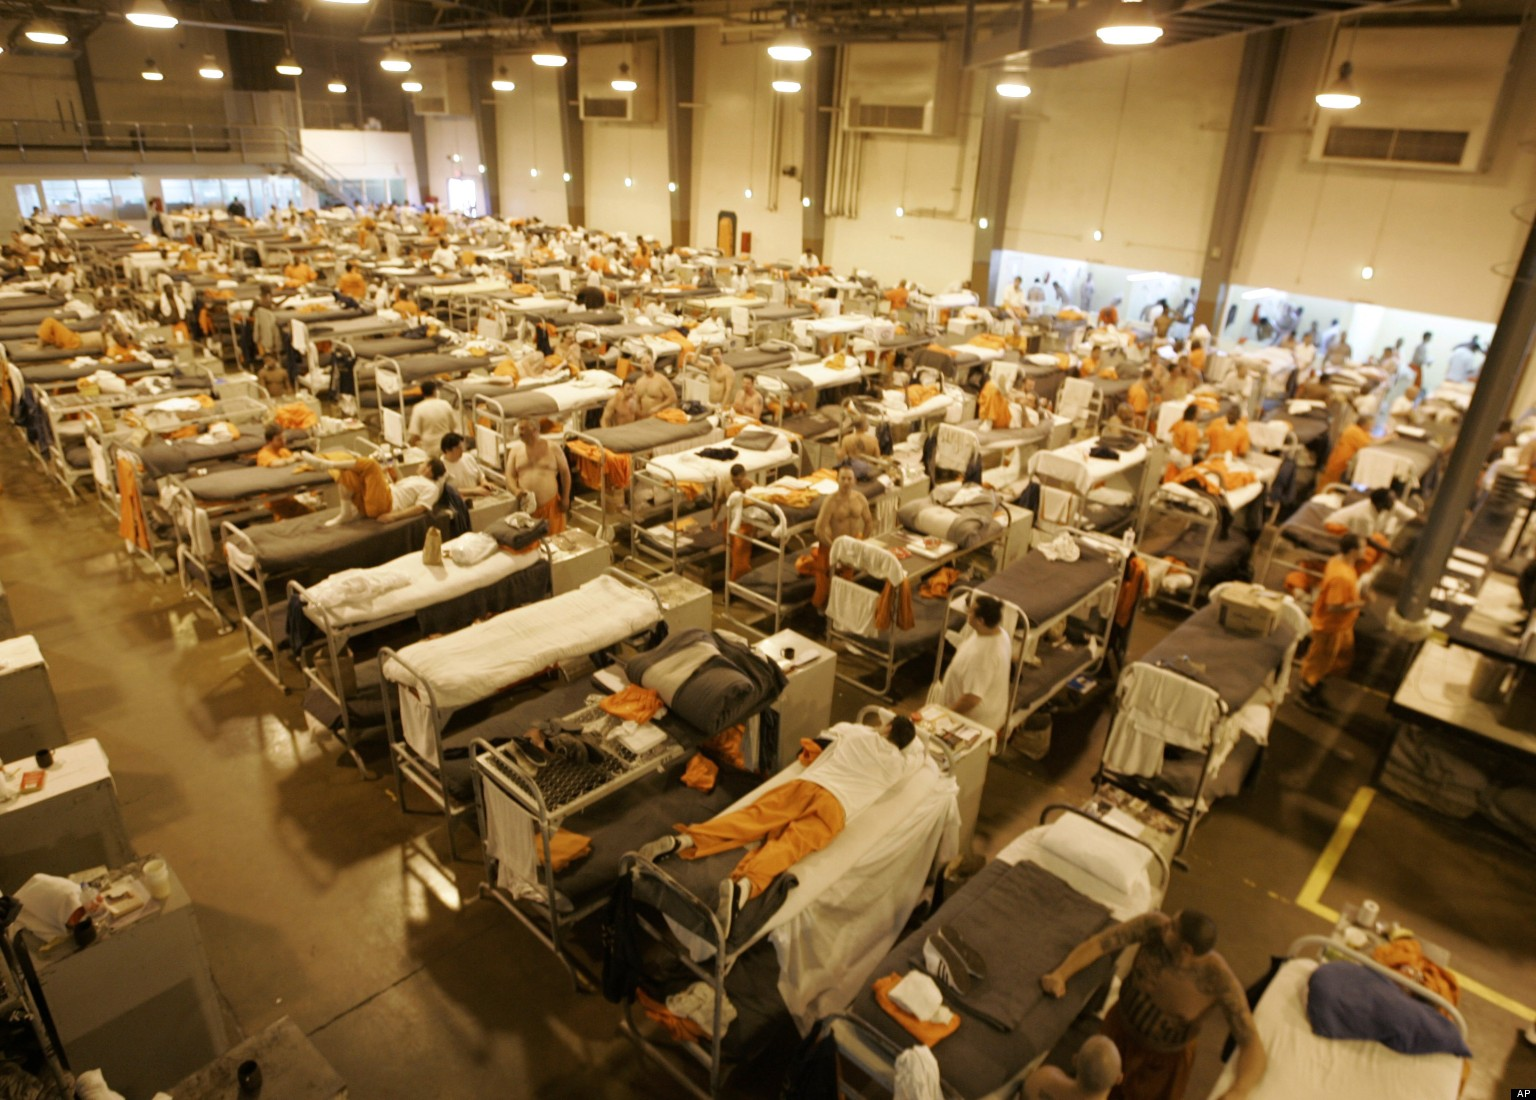 overpopulation in californias prisons Reducing california's overcrowded prison population  reducing california's overcrowded prison population  prisons, but the effects of.